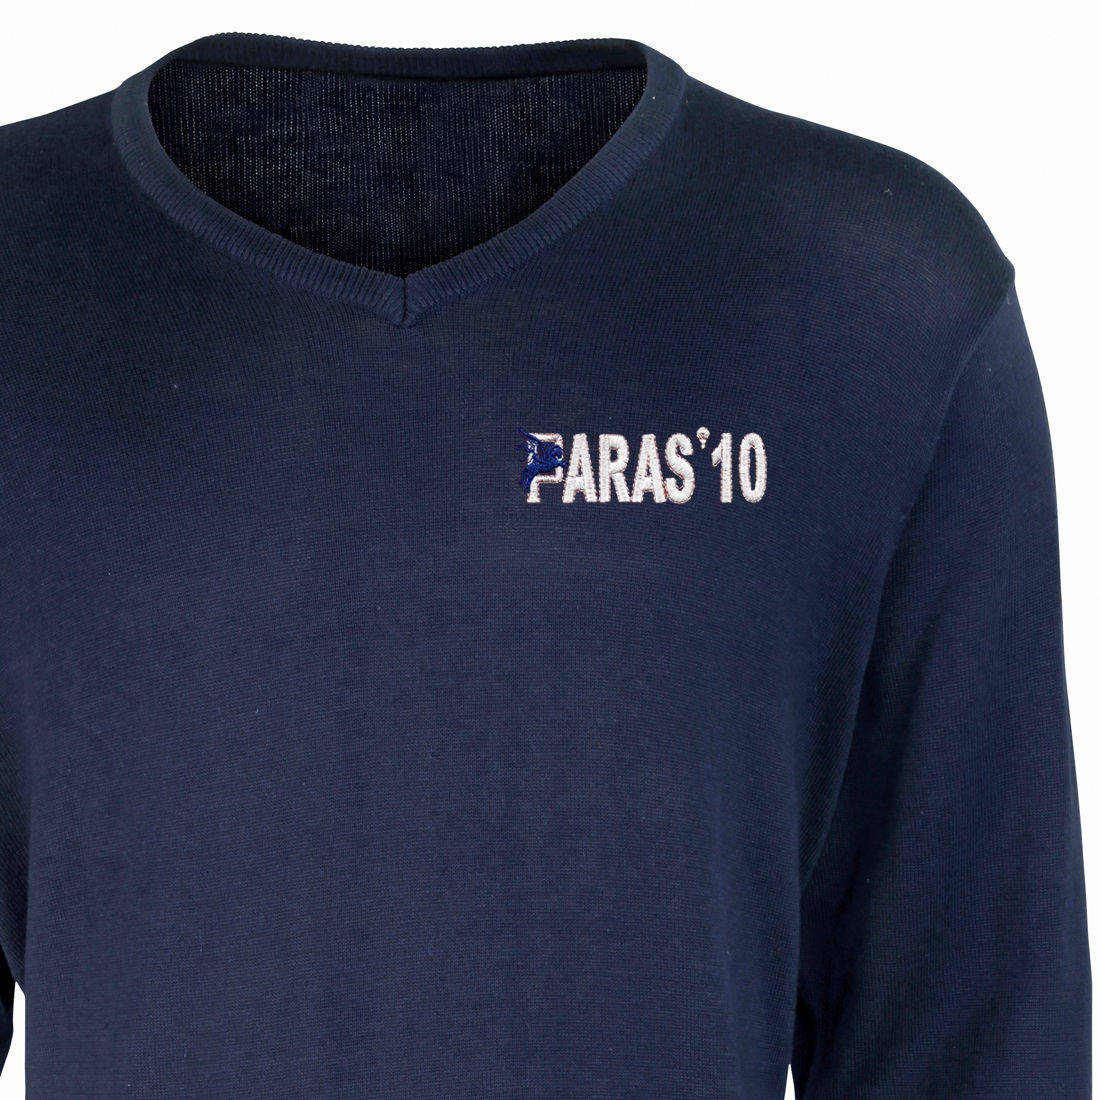 V-Neck Pullover / Sweater - Navy - Paras 10